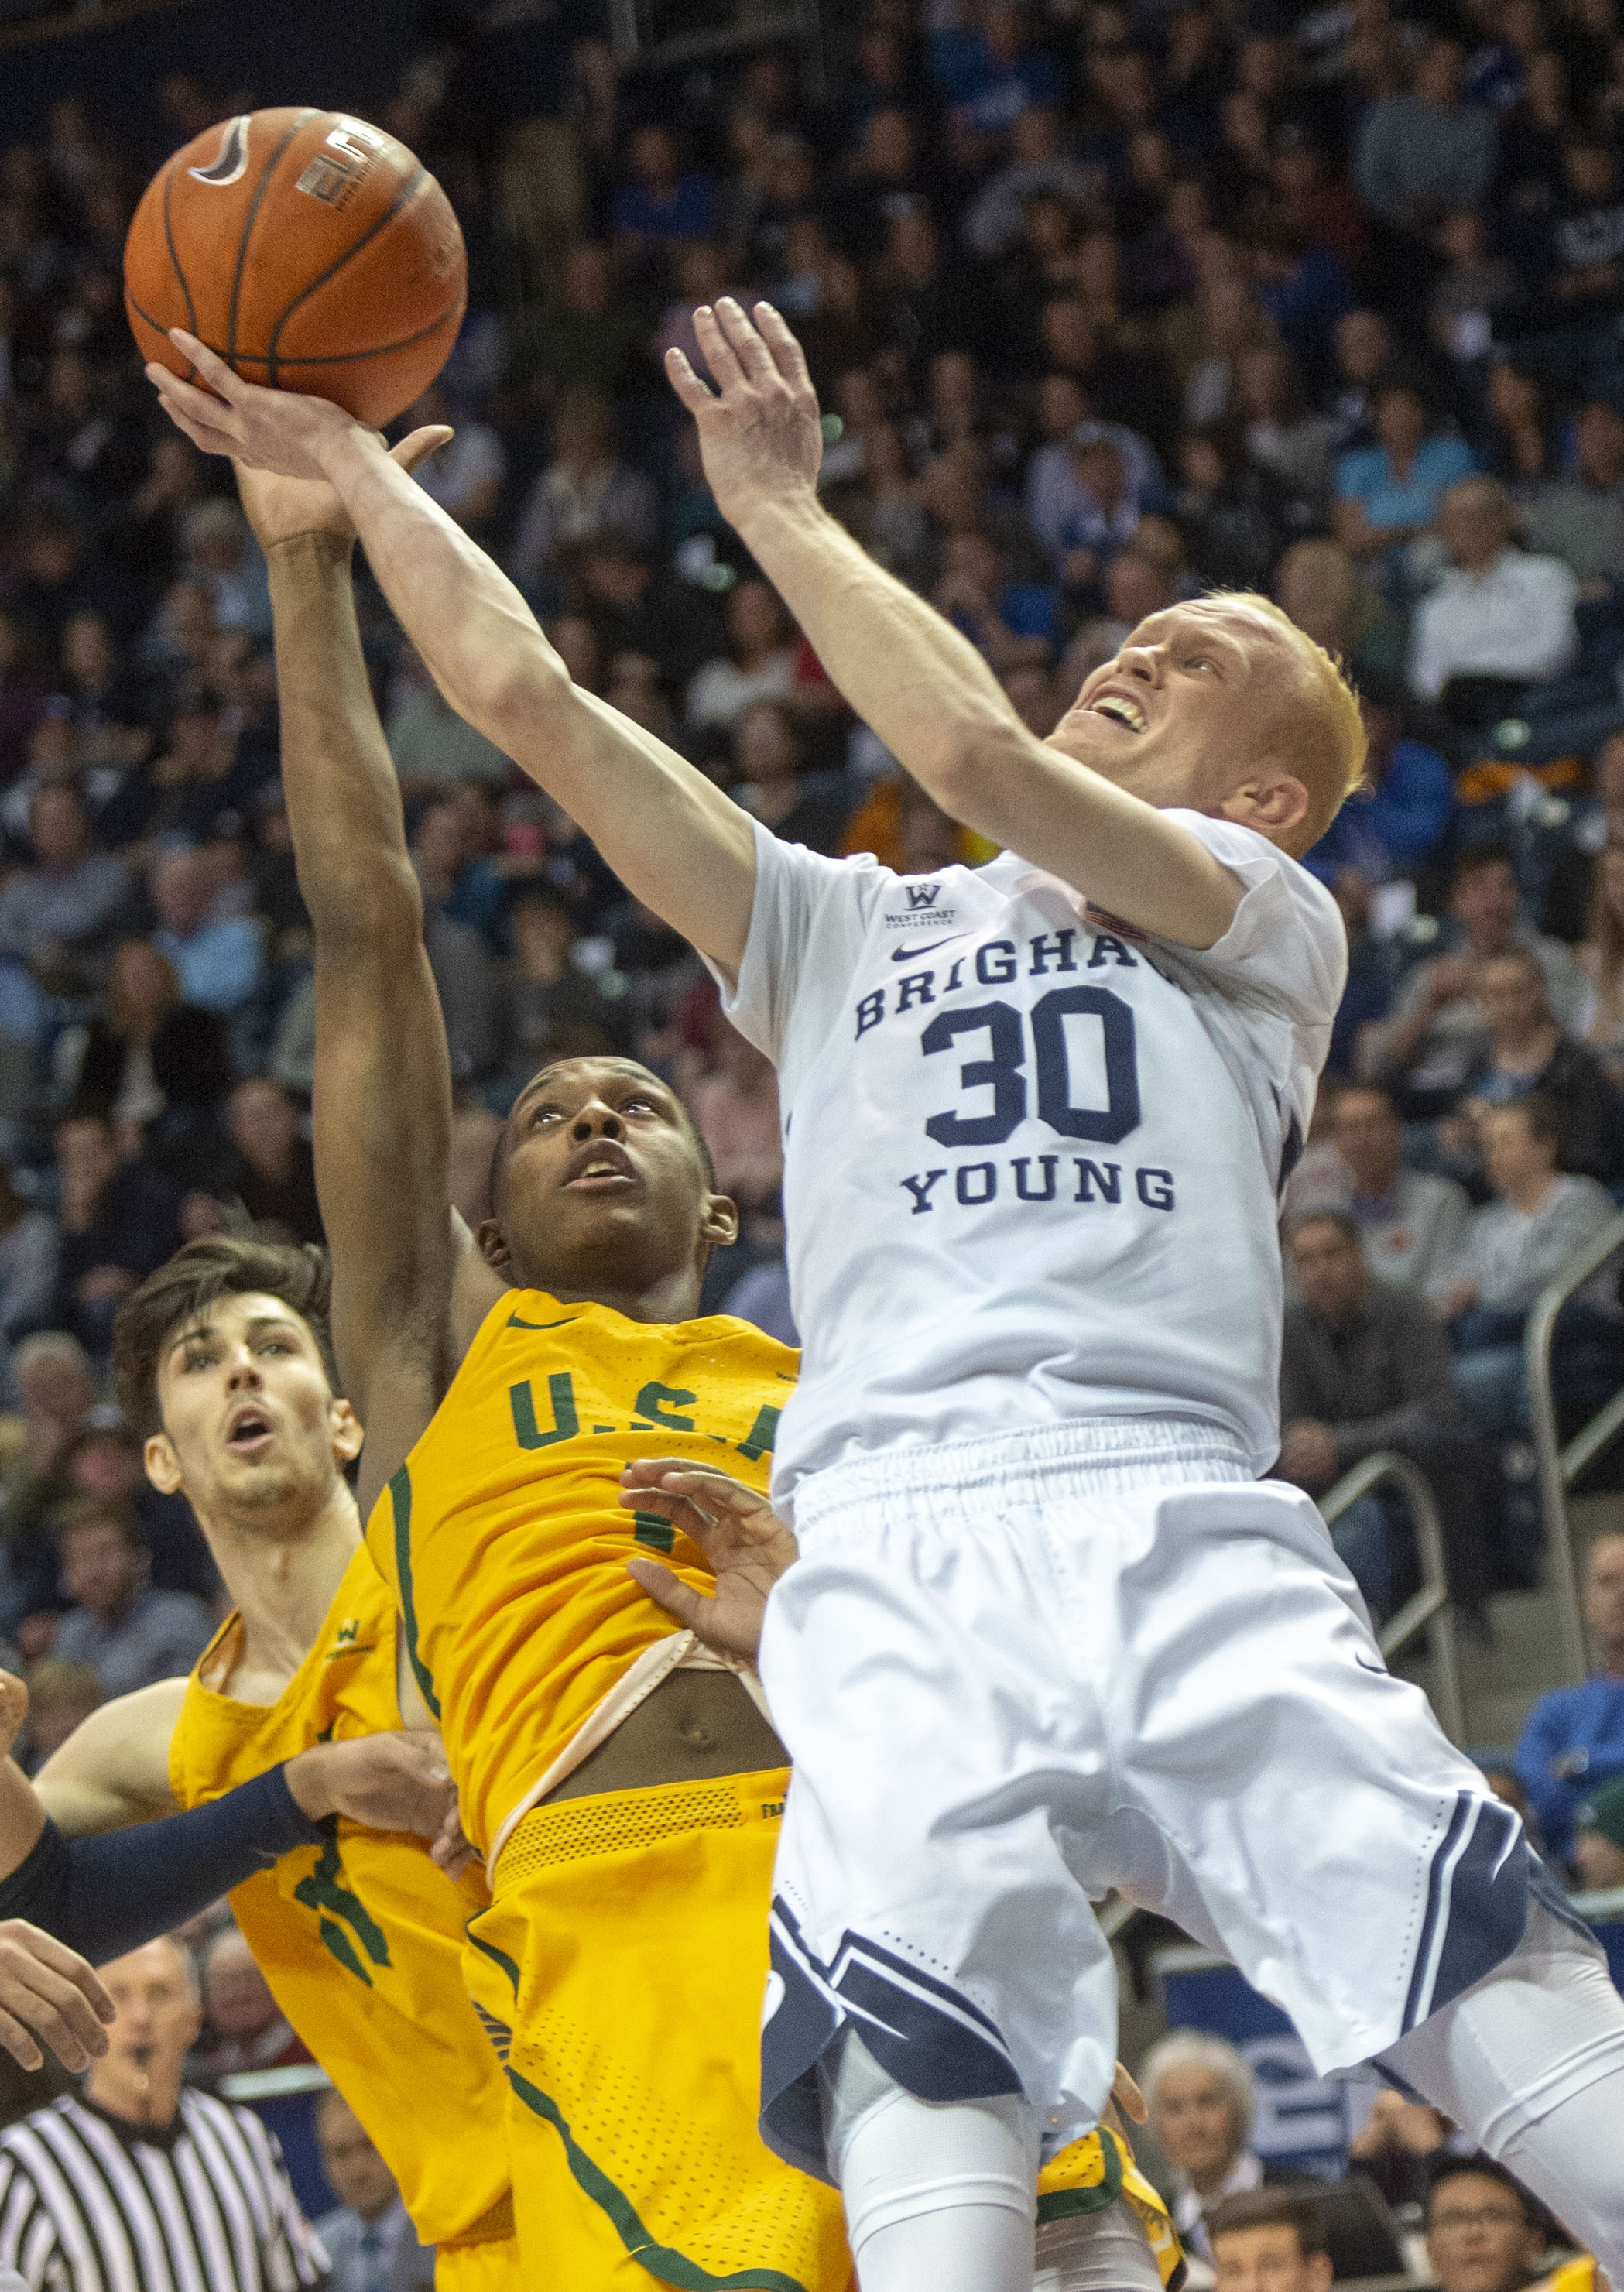 (Rick Egan  |  The Salt Lake Tribune)  Brigham Young Cougars guard TJ Haws (30) takes a shot as San Francisco Dons guard Jamaree Bouyea (1), in WCC basketball action at the Marriott Center, Thursday, February 21, 2018.